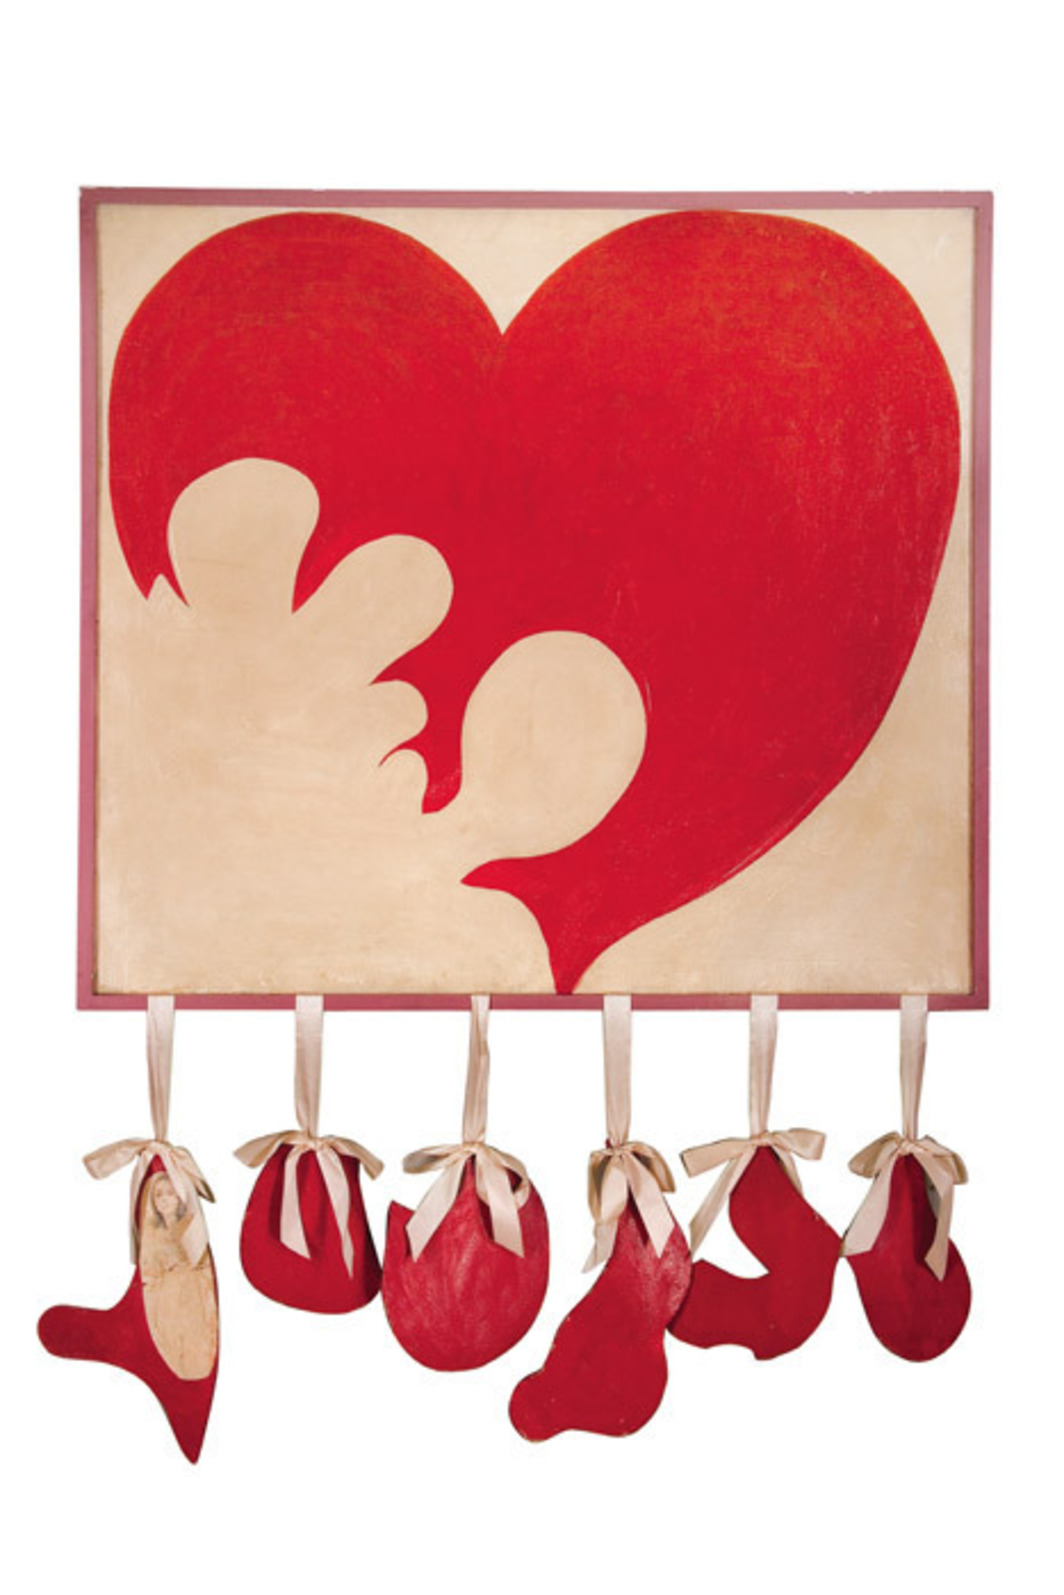 "Delia Cancela, Corazón destrozado (Destroyed Heart), 1964, oil on canvas, wood, silk, ink on paper, 59 x 47 1/4""."